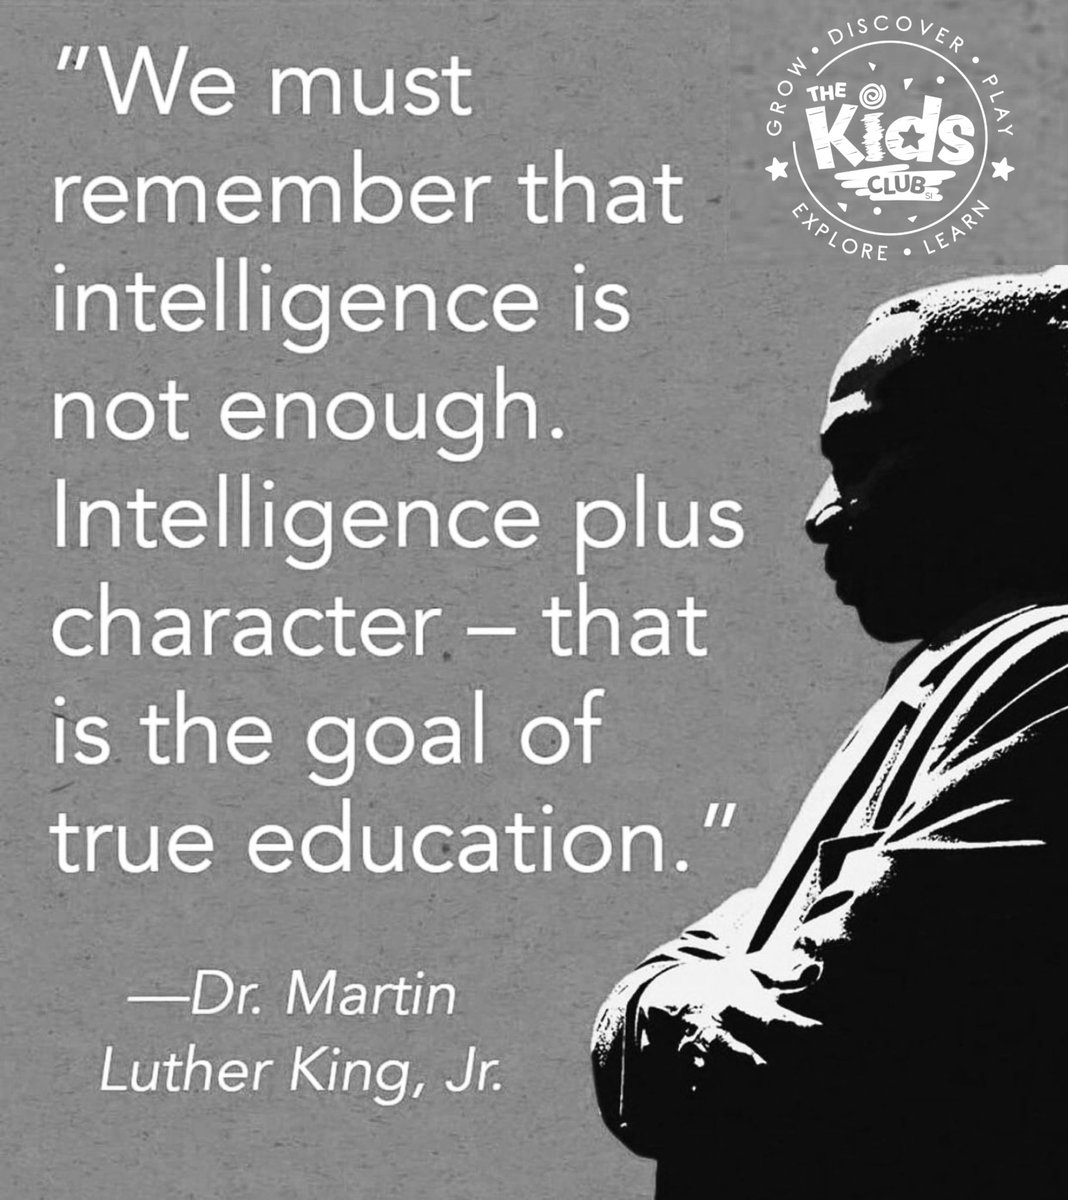 Education and character are the 🔑!  Happy Martin Luther King Jr. Day.  ☮️❤️#dream #dreams #statenislandny #martinlutherkingday #january #remember #love #life #peace #play #faith #joy #happy #friends #friendship #friend #freedom #together #character #happyplace #hope #brotherhood